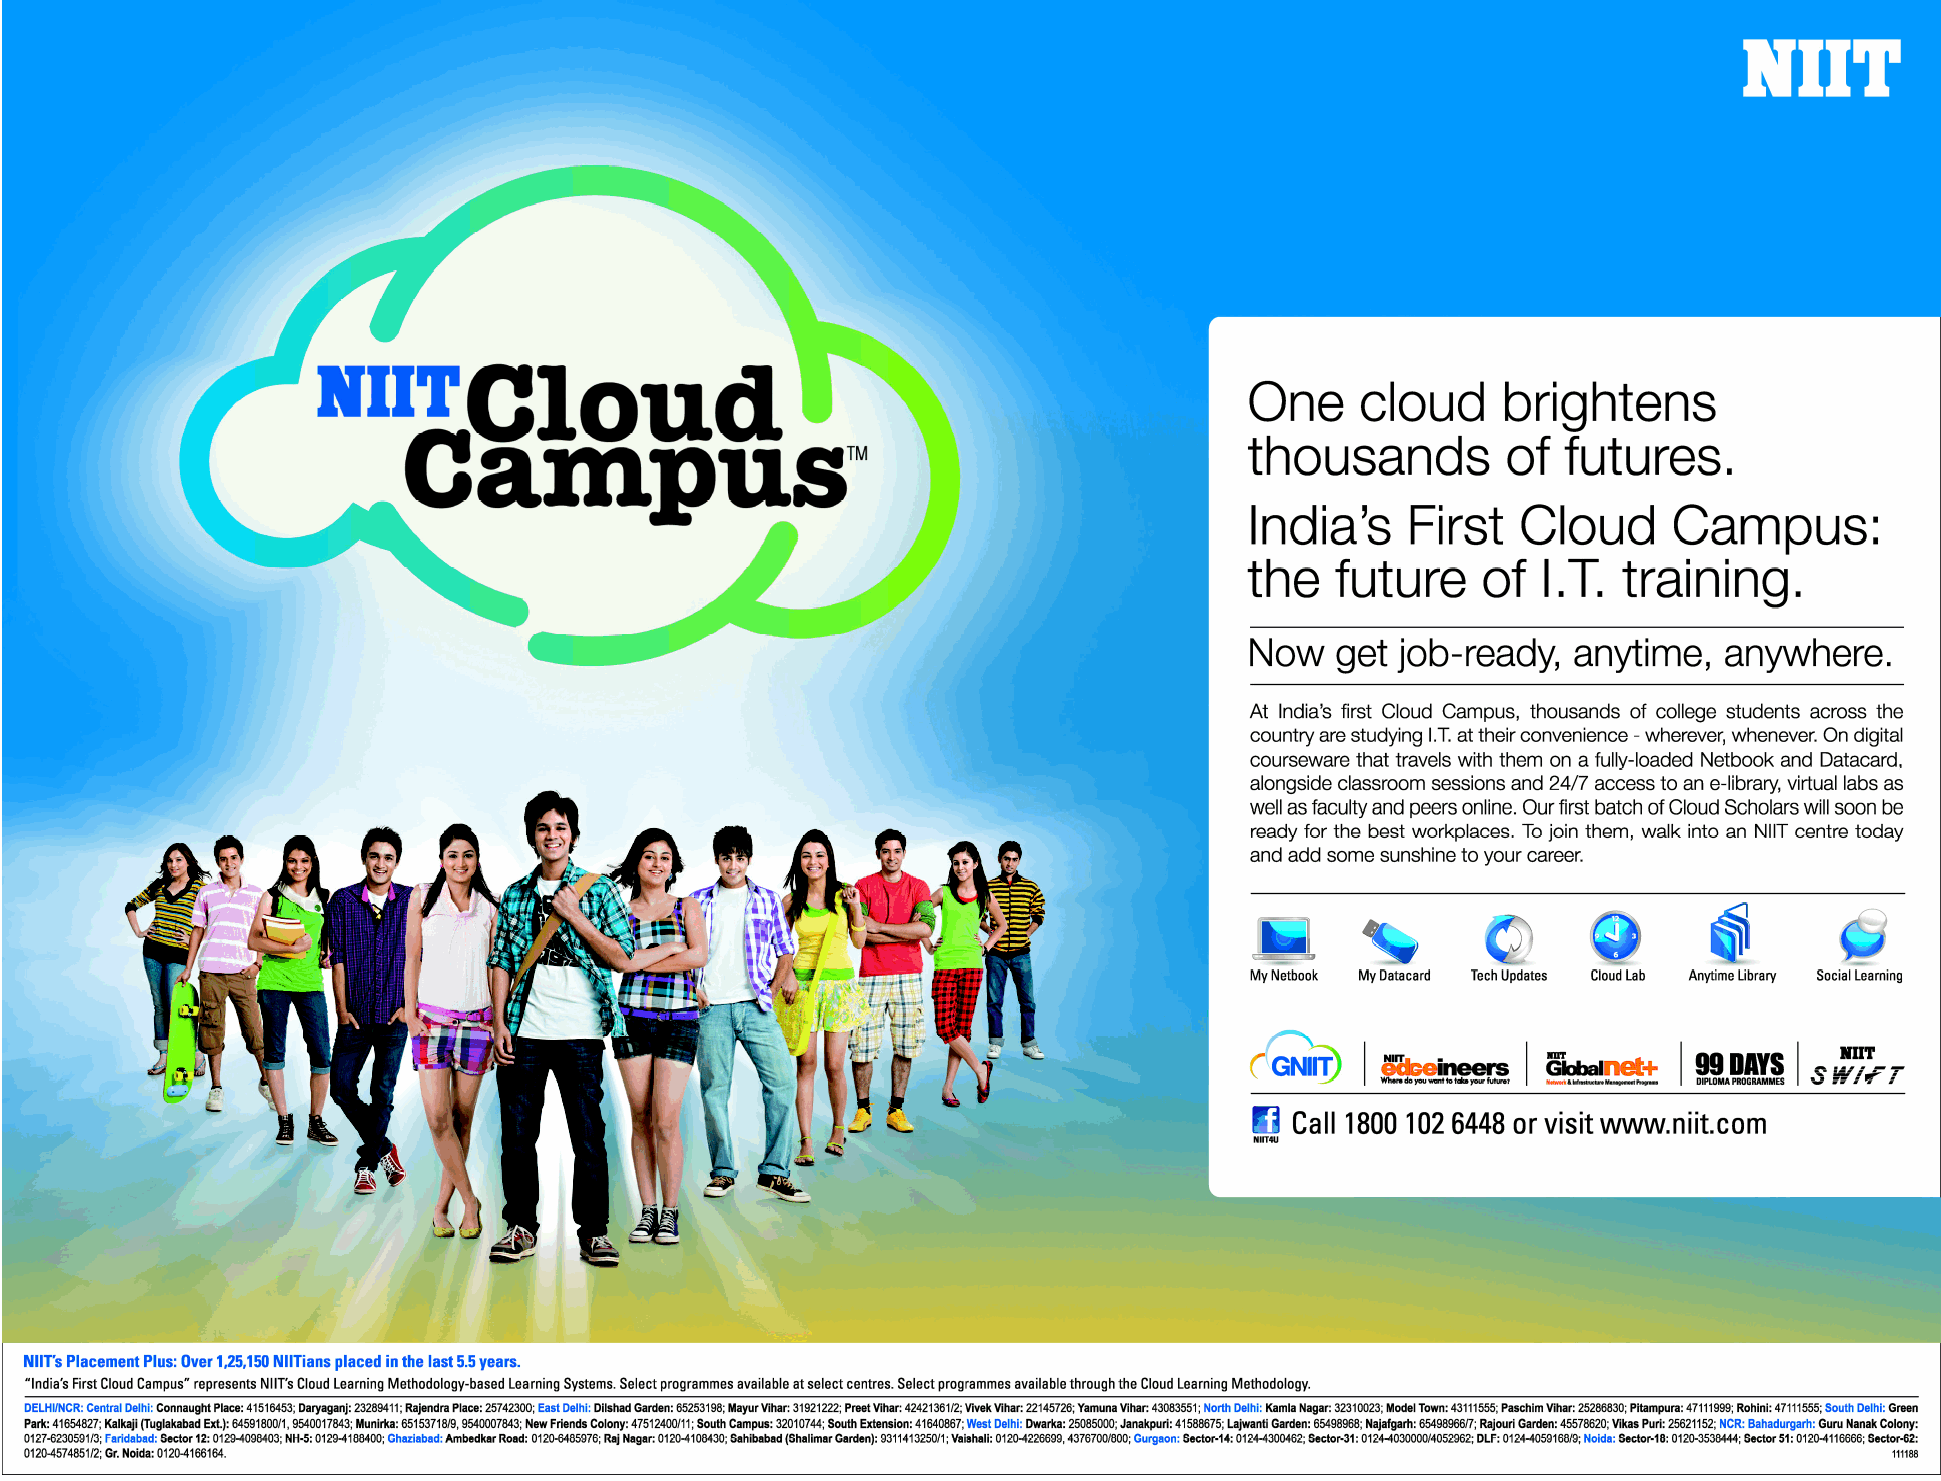 NIIT Cloud Campus